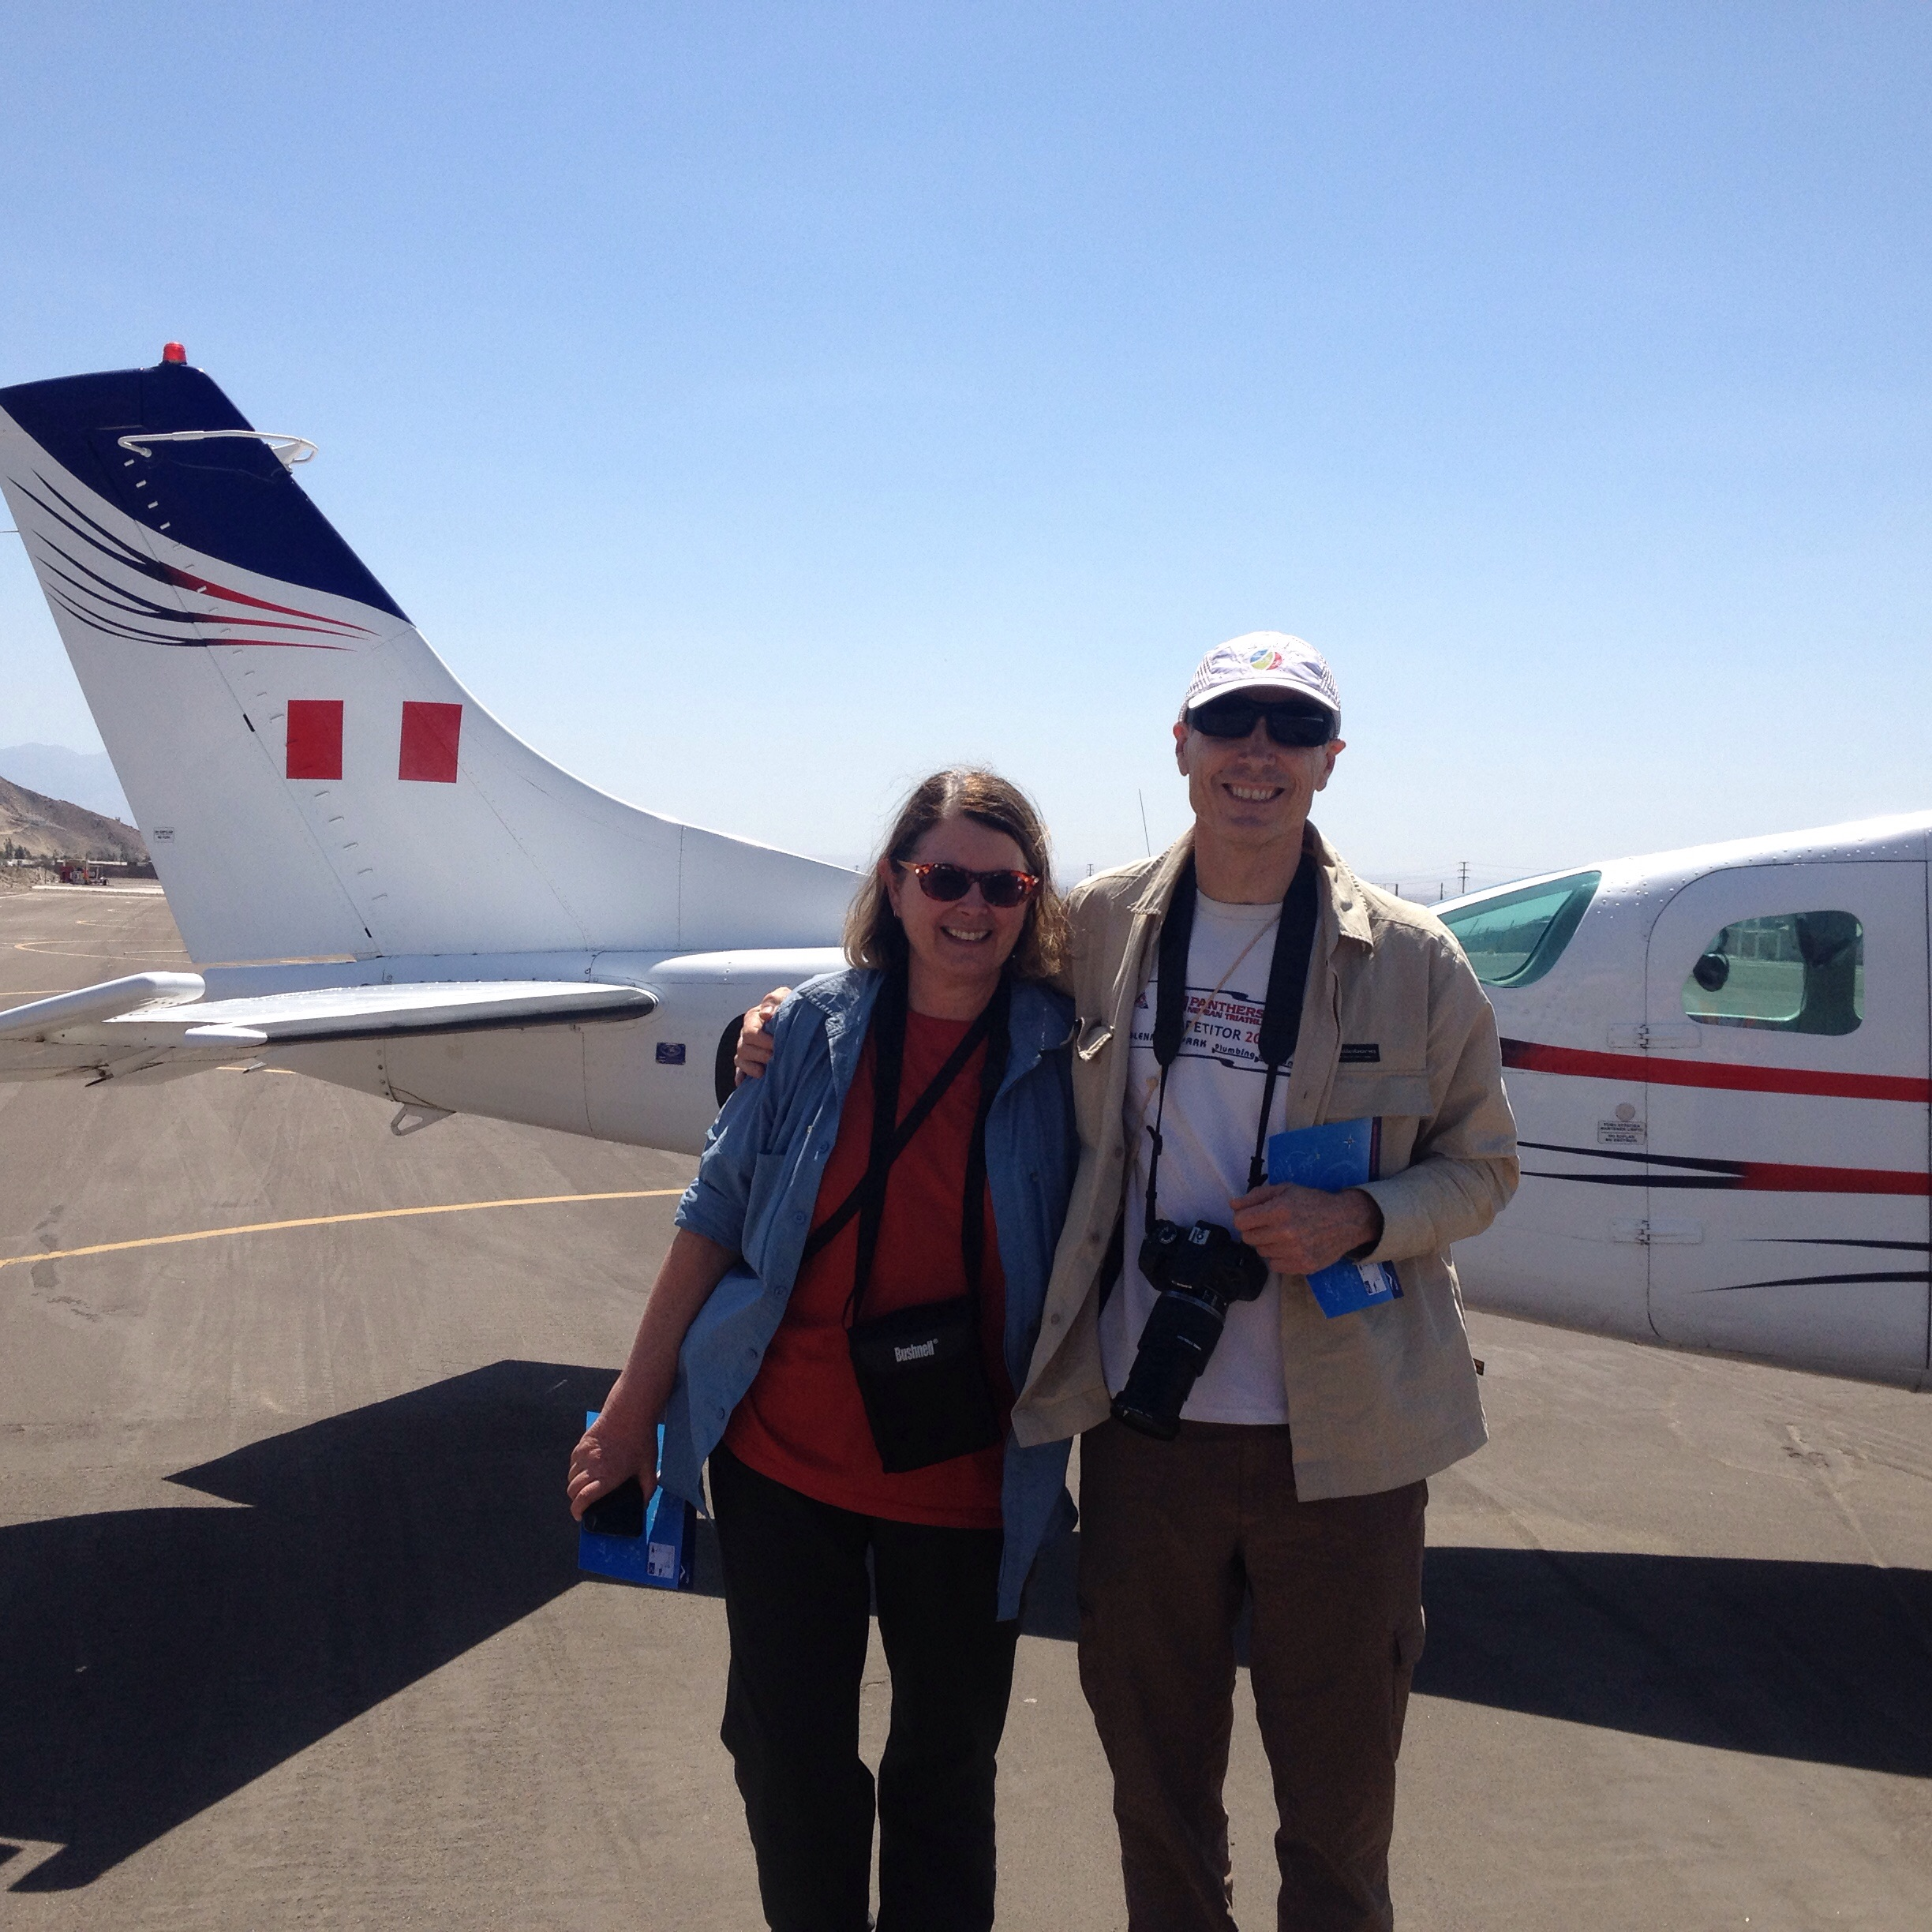 Karen and Paul back to earth after Nazcar lines viewing flight